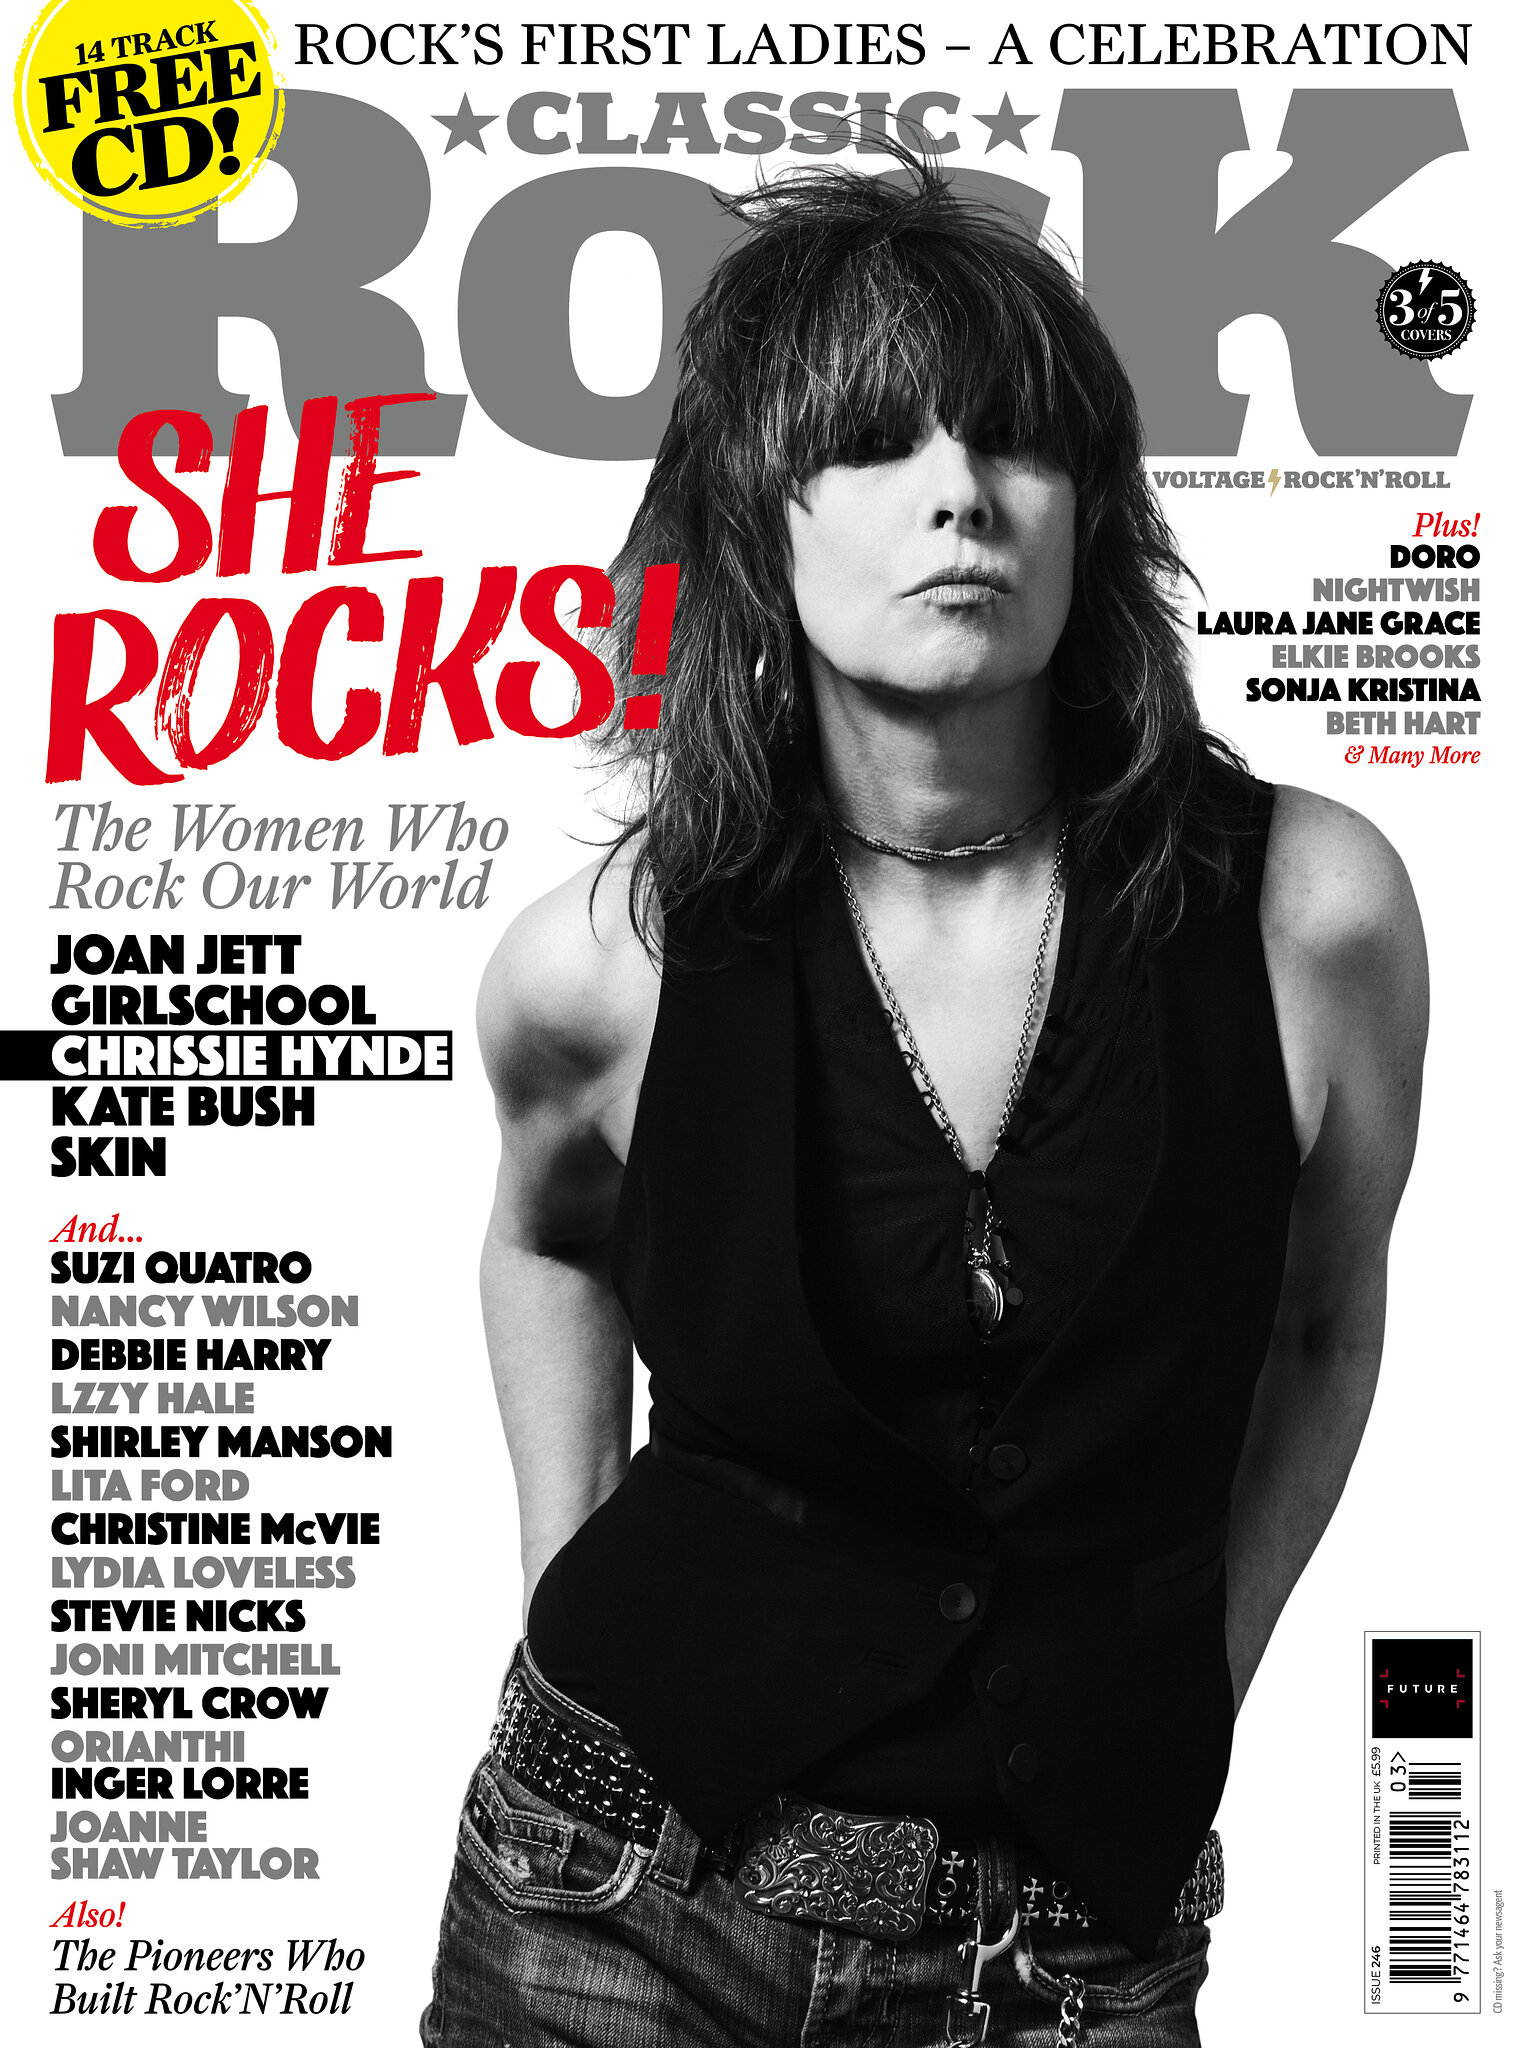 Classic Rock : Celebrate Women who Rock!